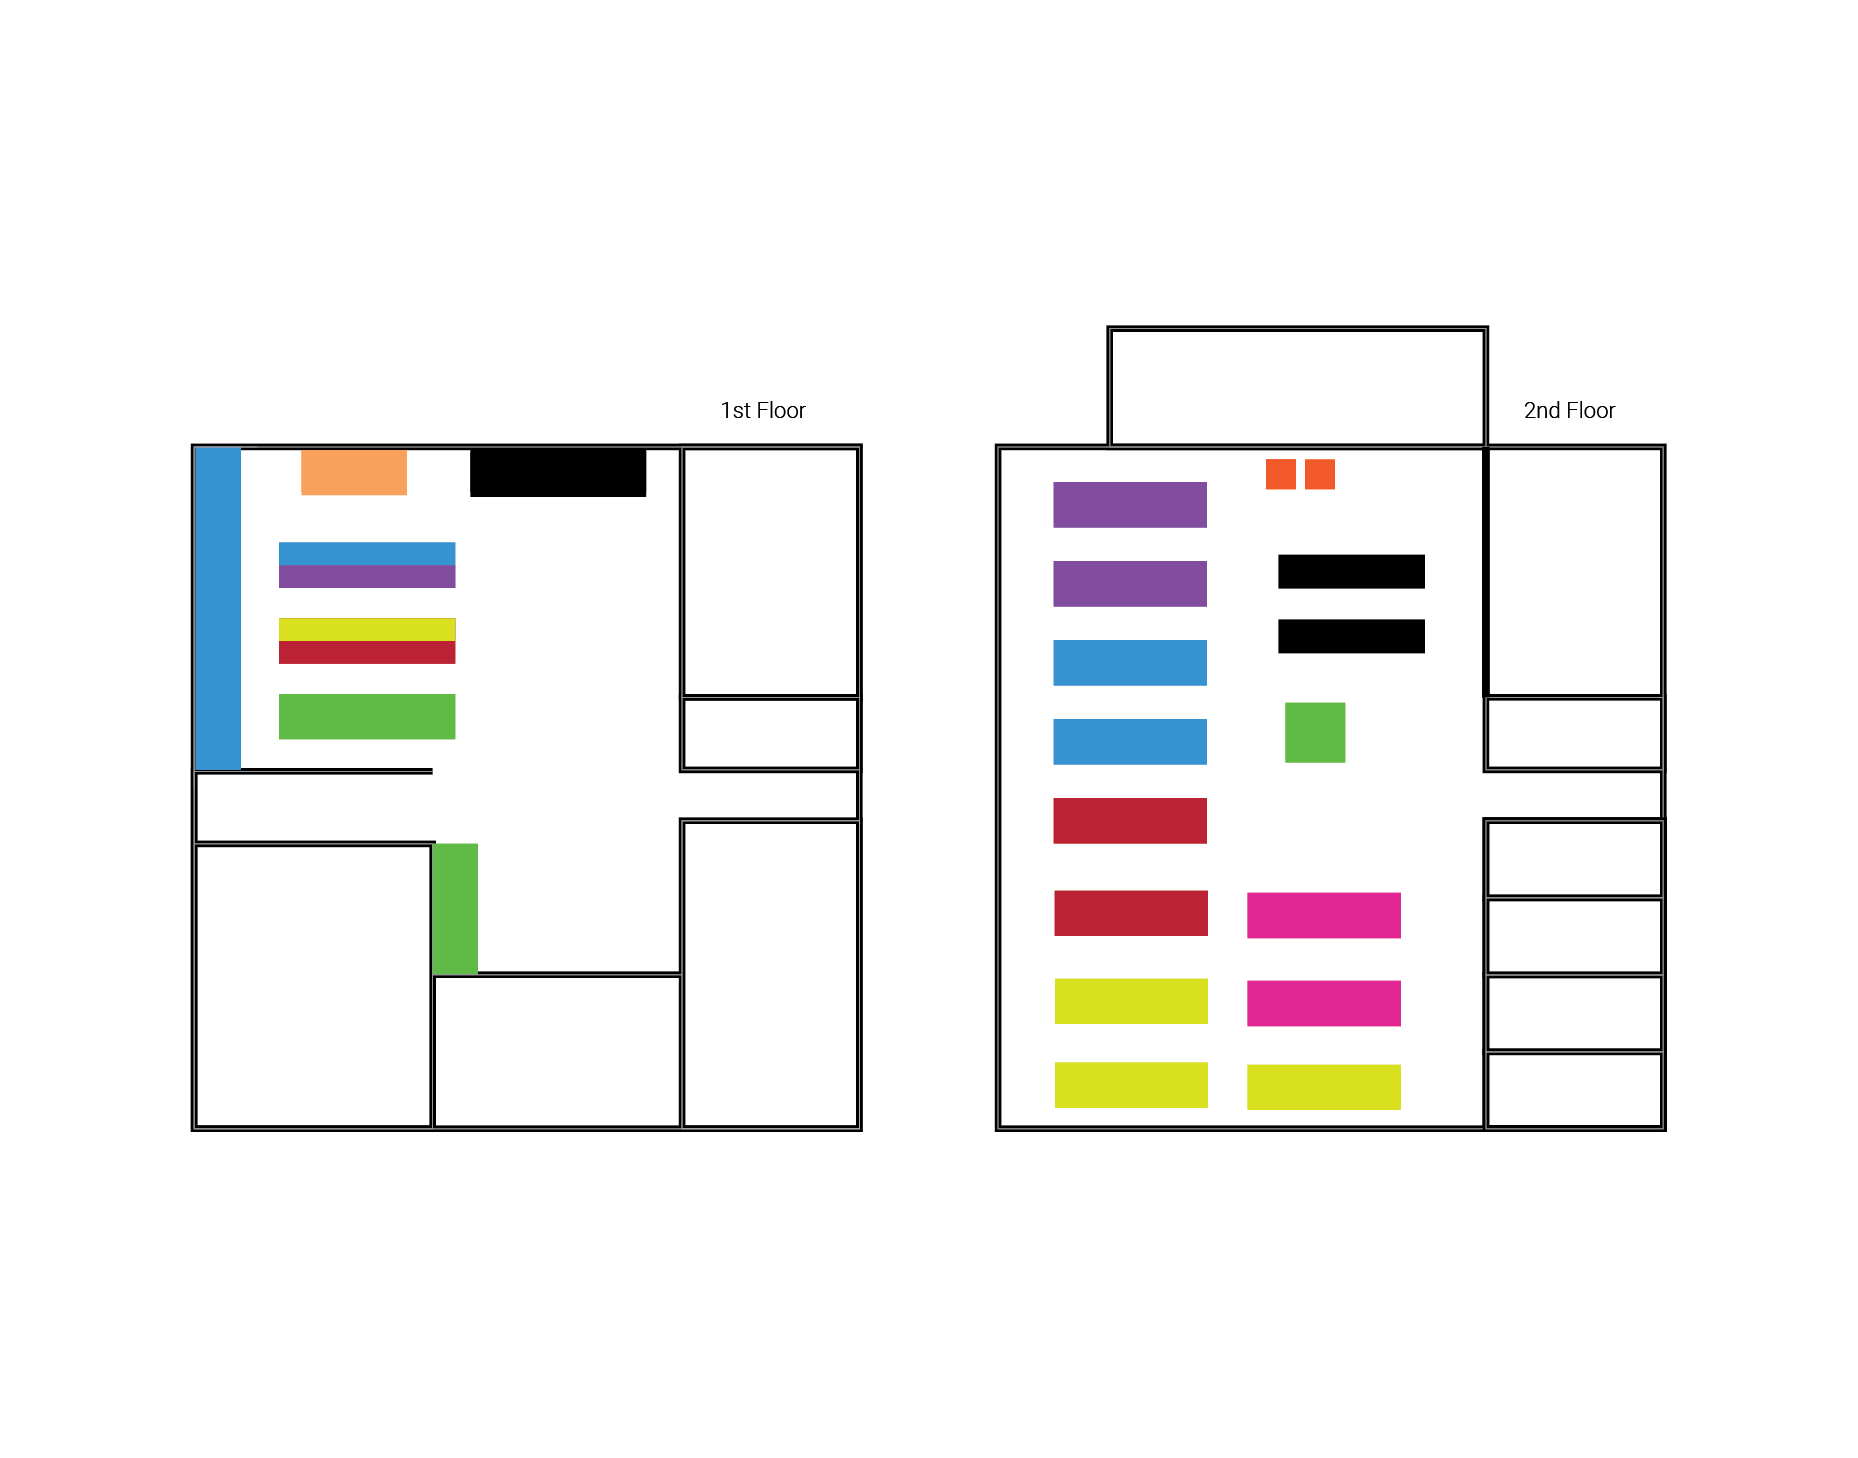 color coded section map